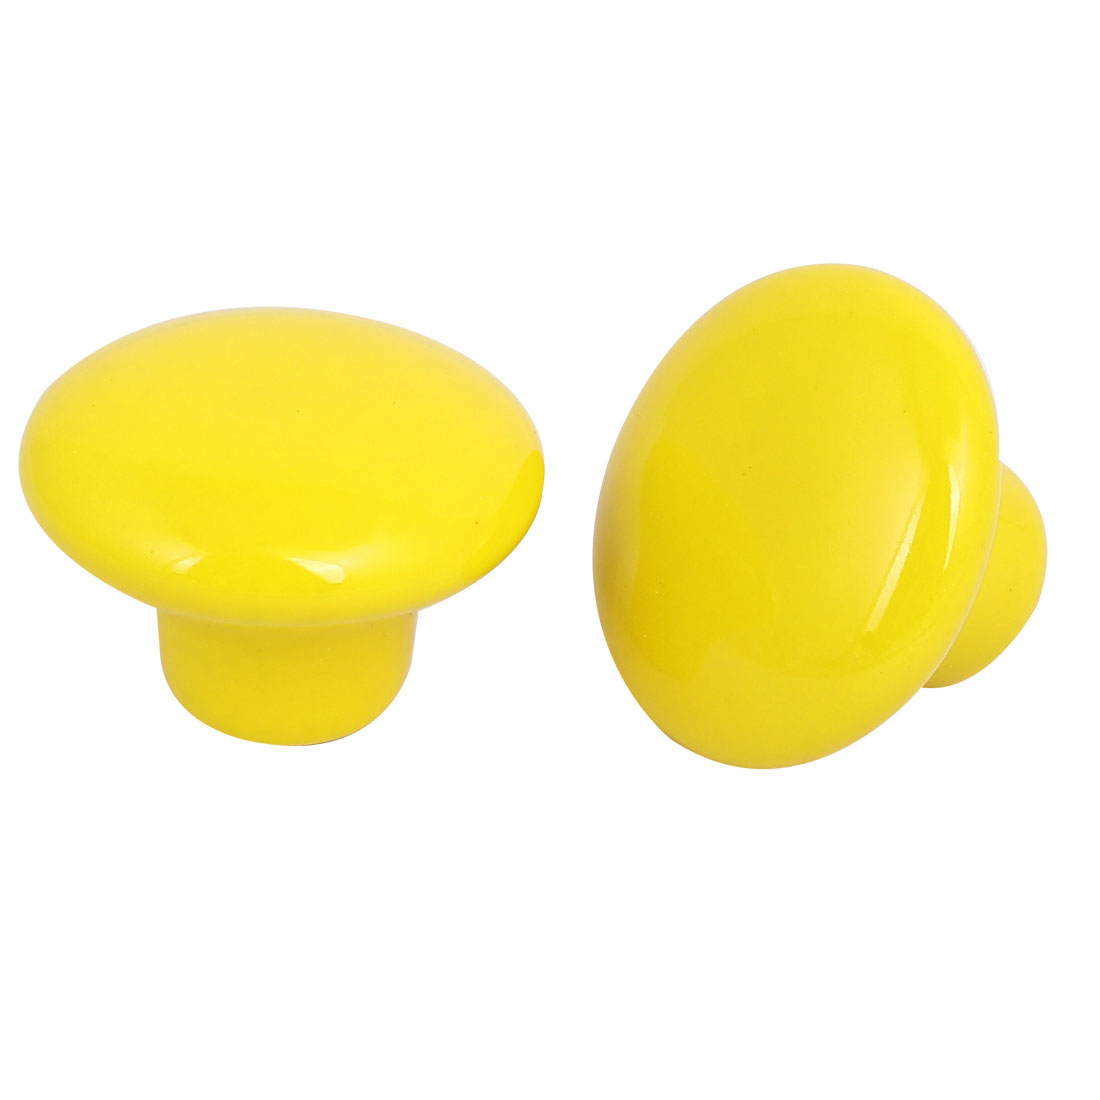 Wardrobe Drawer Ceramic Round Pull Handles Knobs Yellow 33mm Dia 2pcs